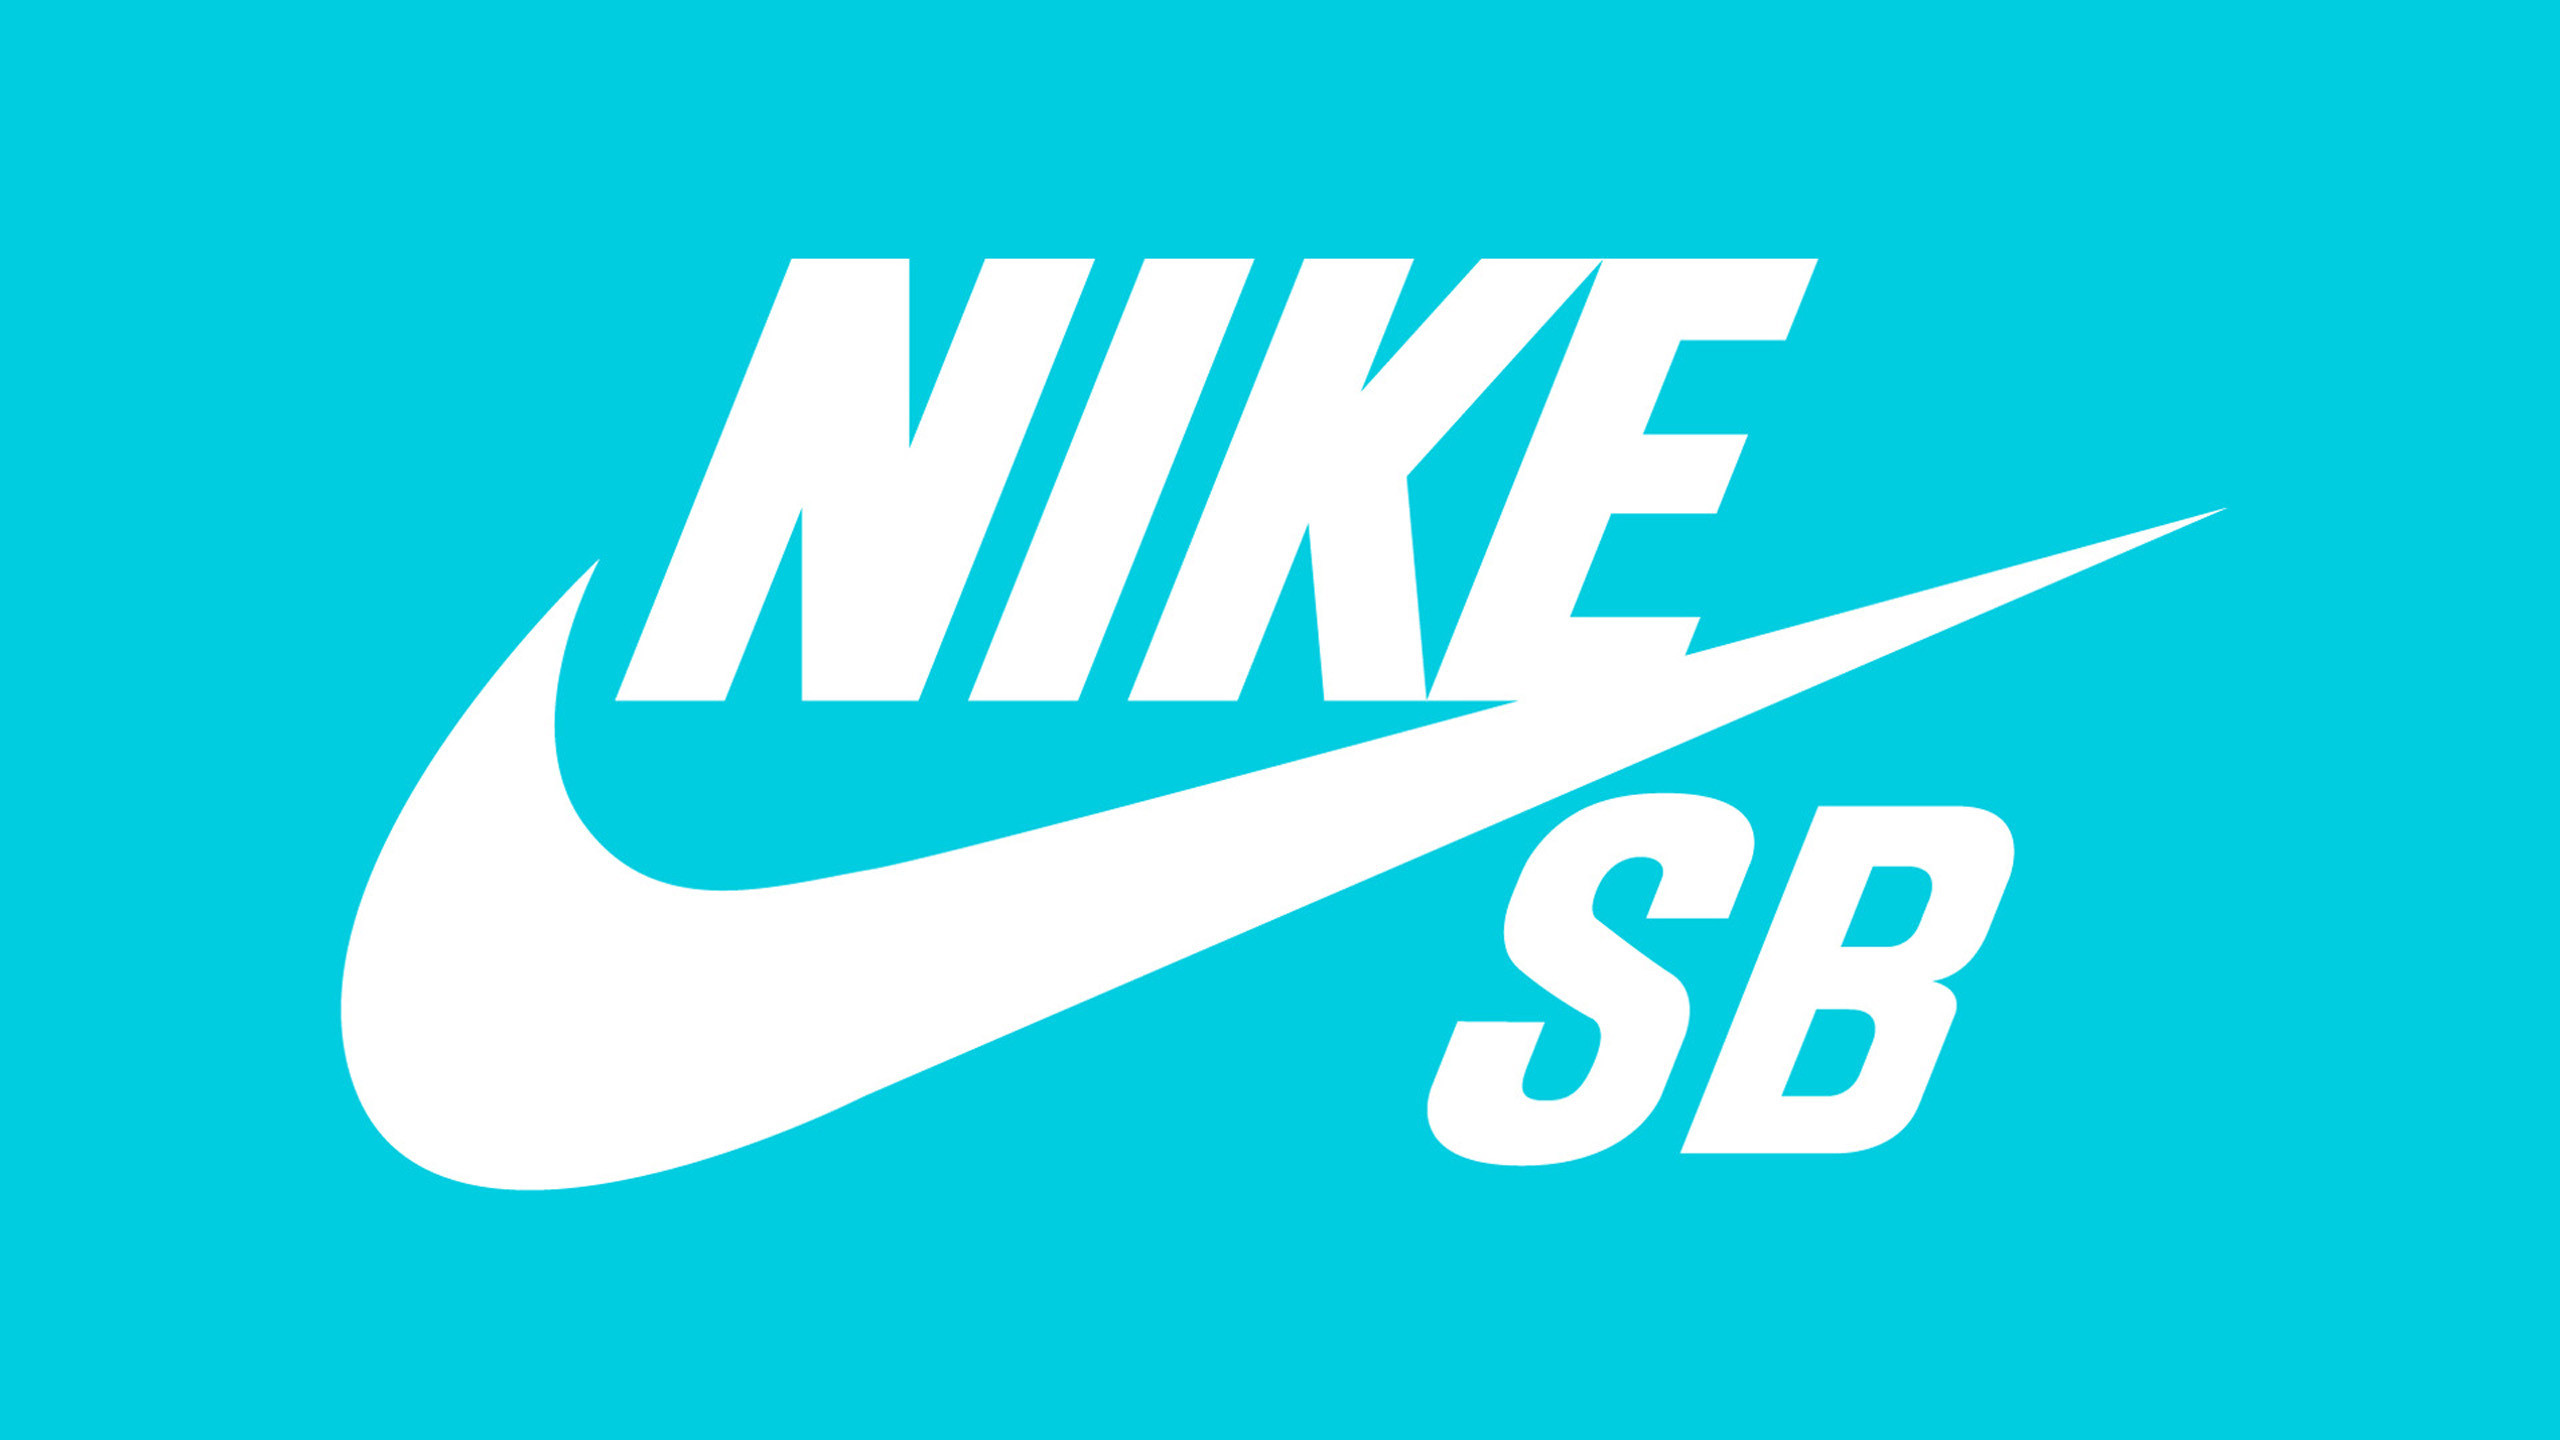 best images about Nike Wallpapers on Pinterest It is day